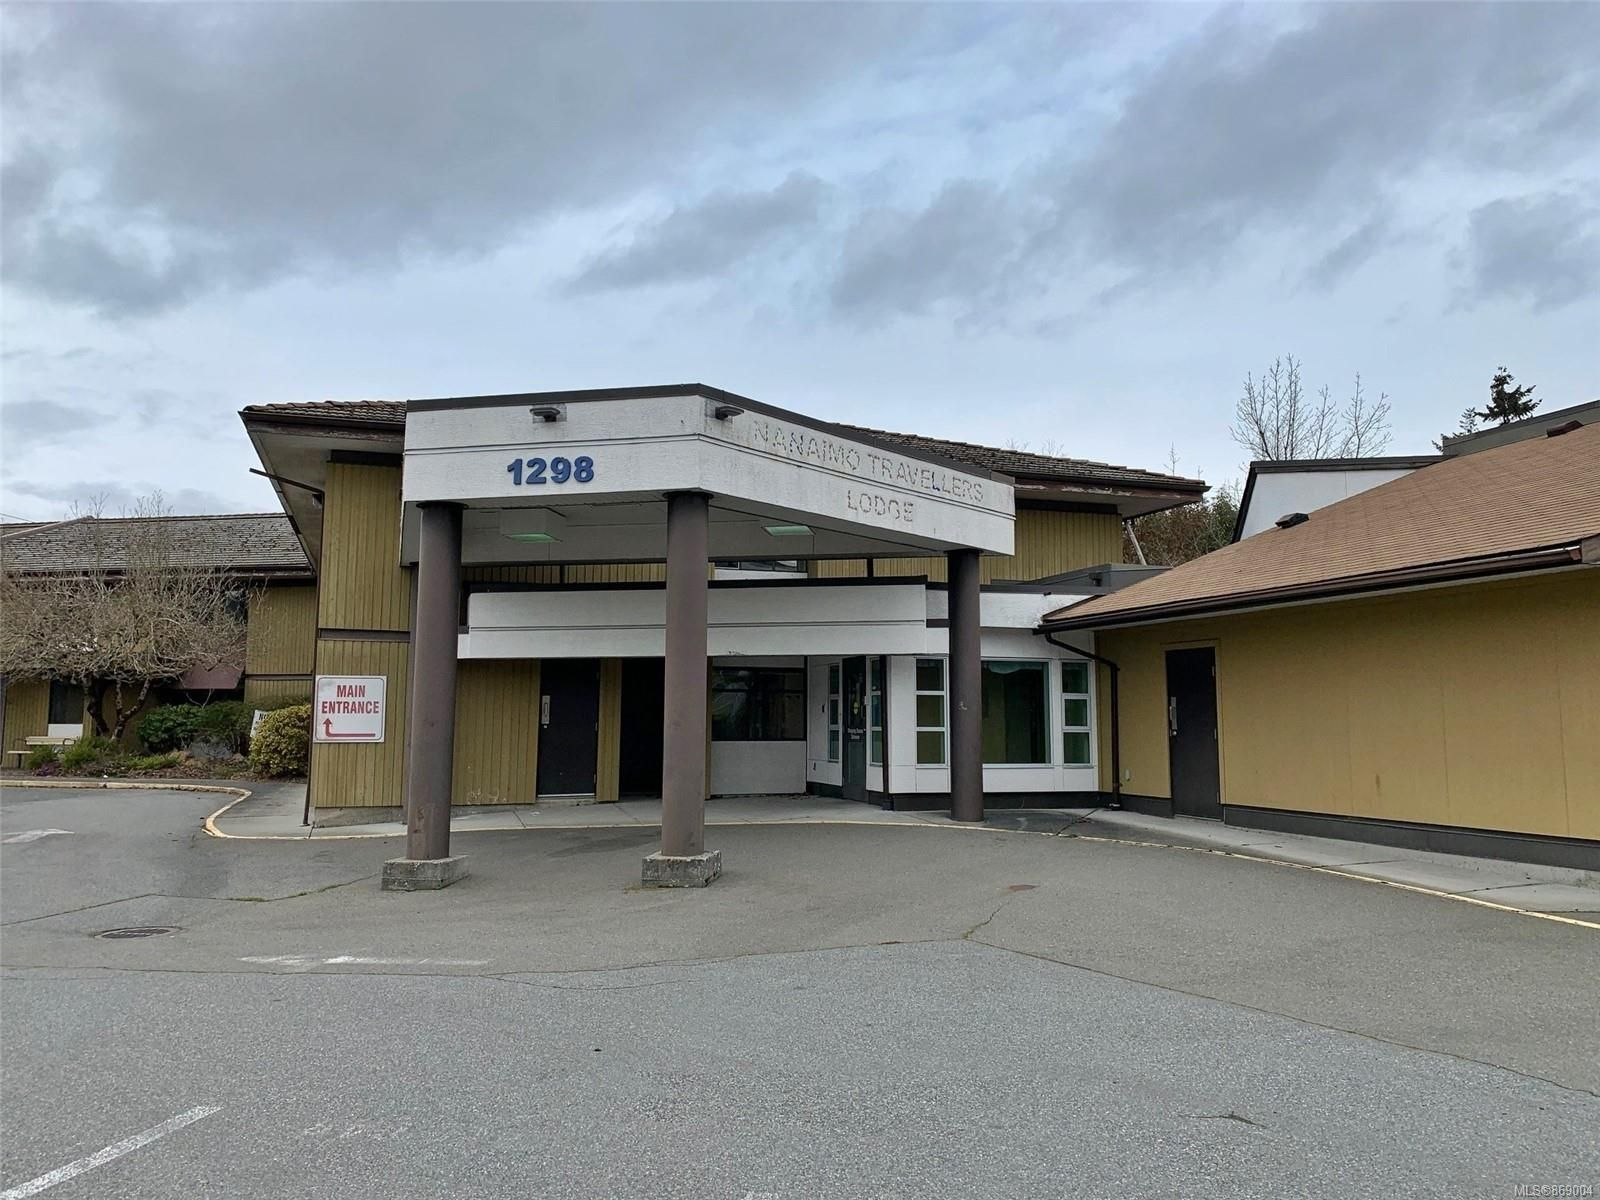 Main Photo: 1298 Nelson St in : Na Central Nanaimo Mixed Use for sale (Nanaimo)  : MLS®# 869004